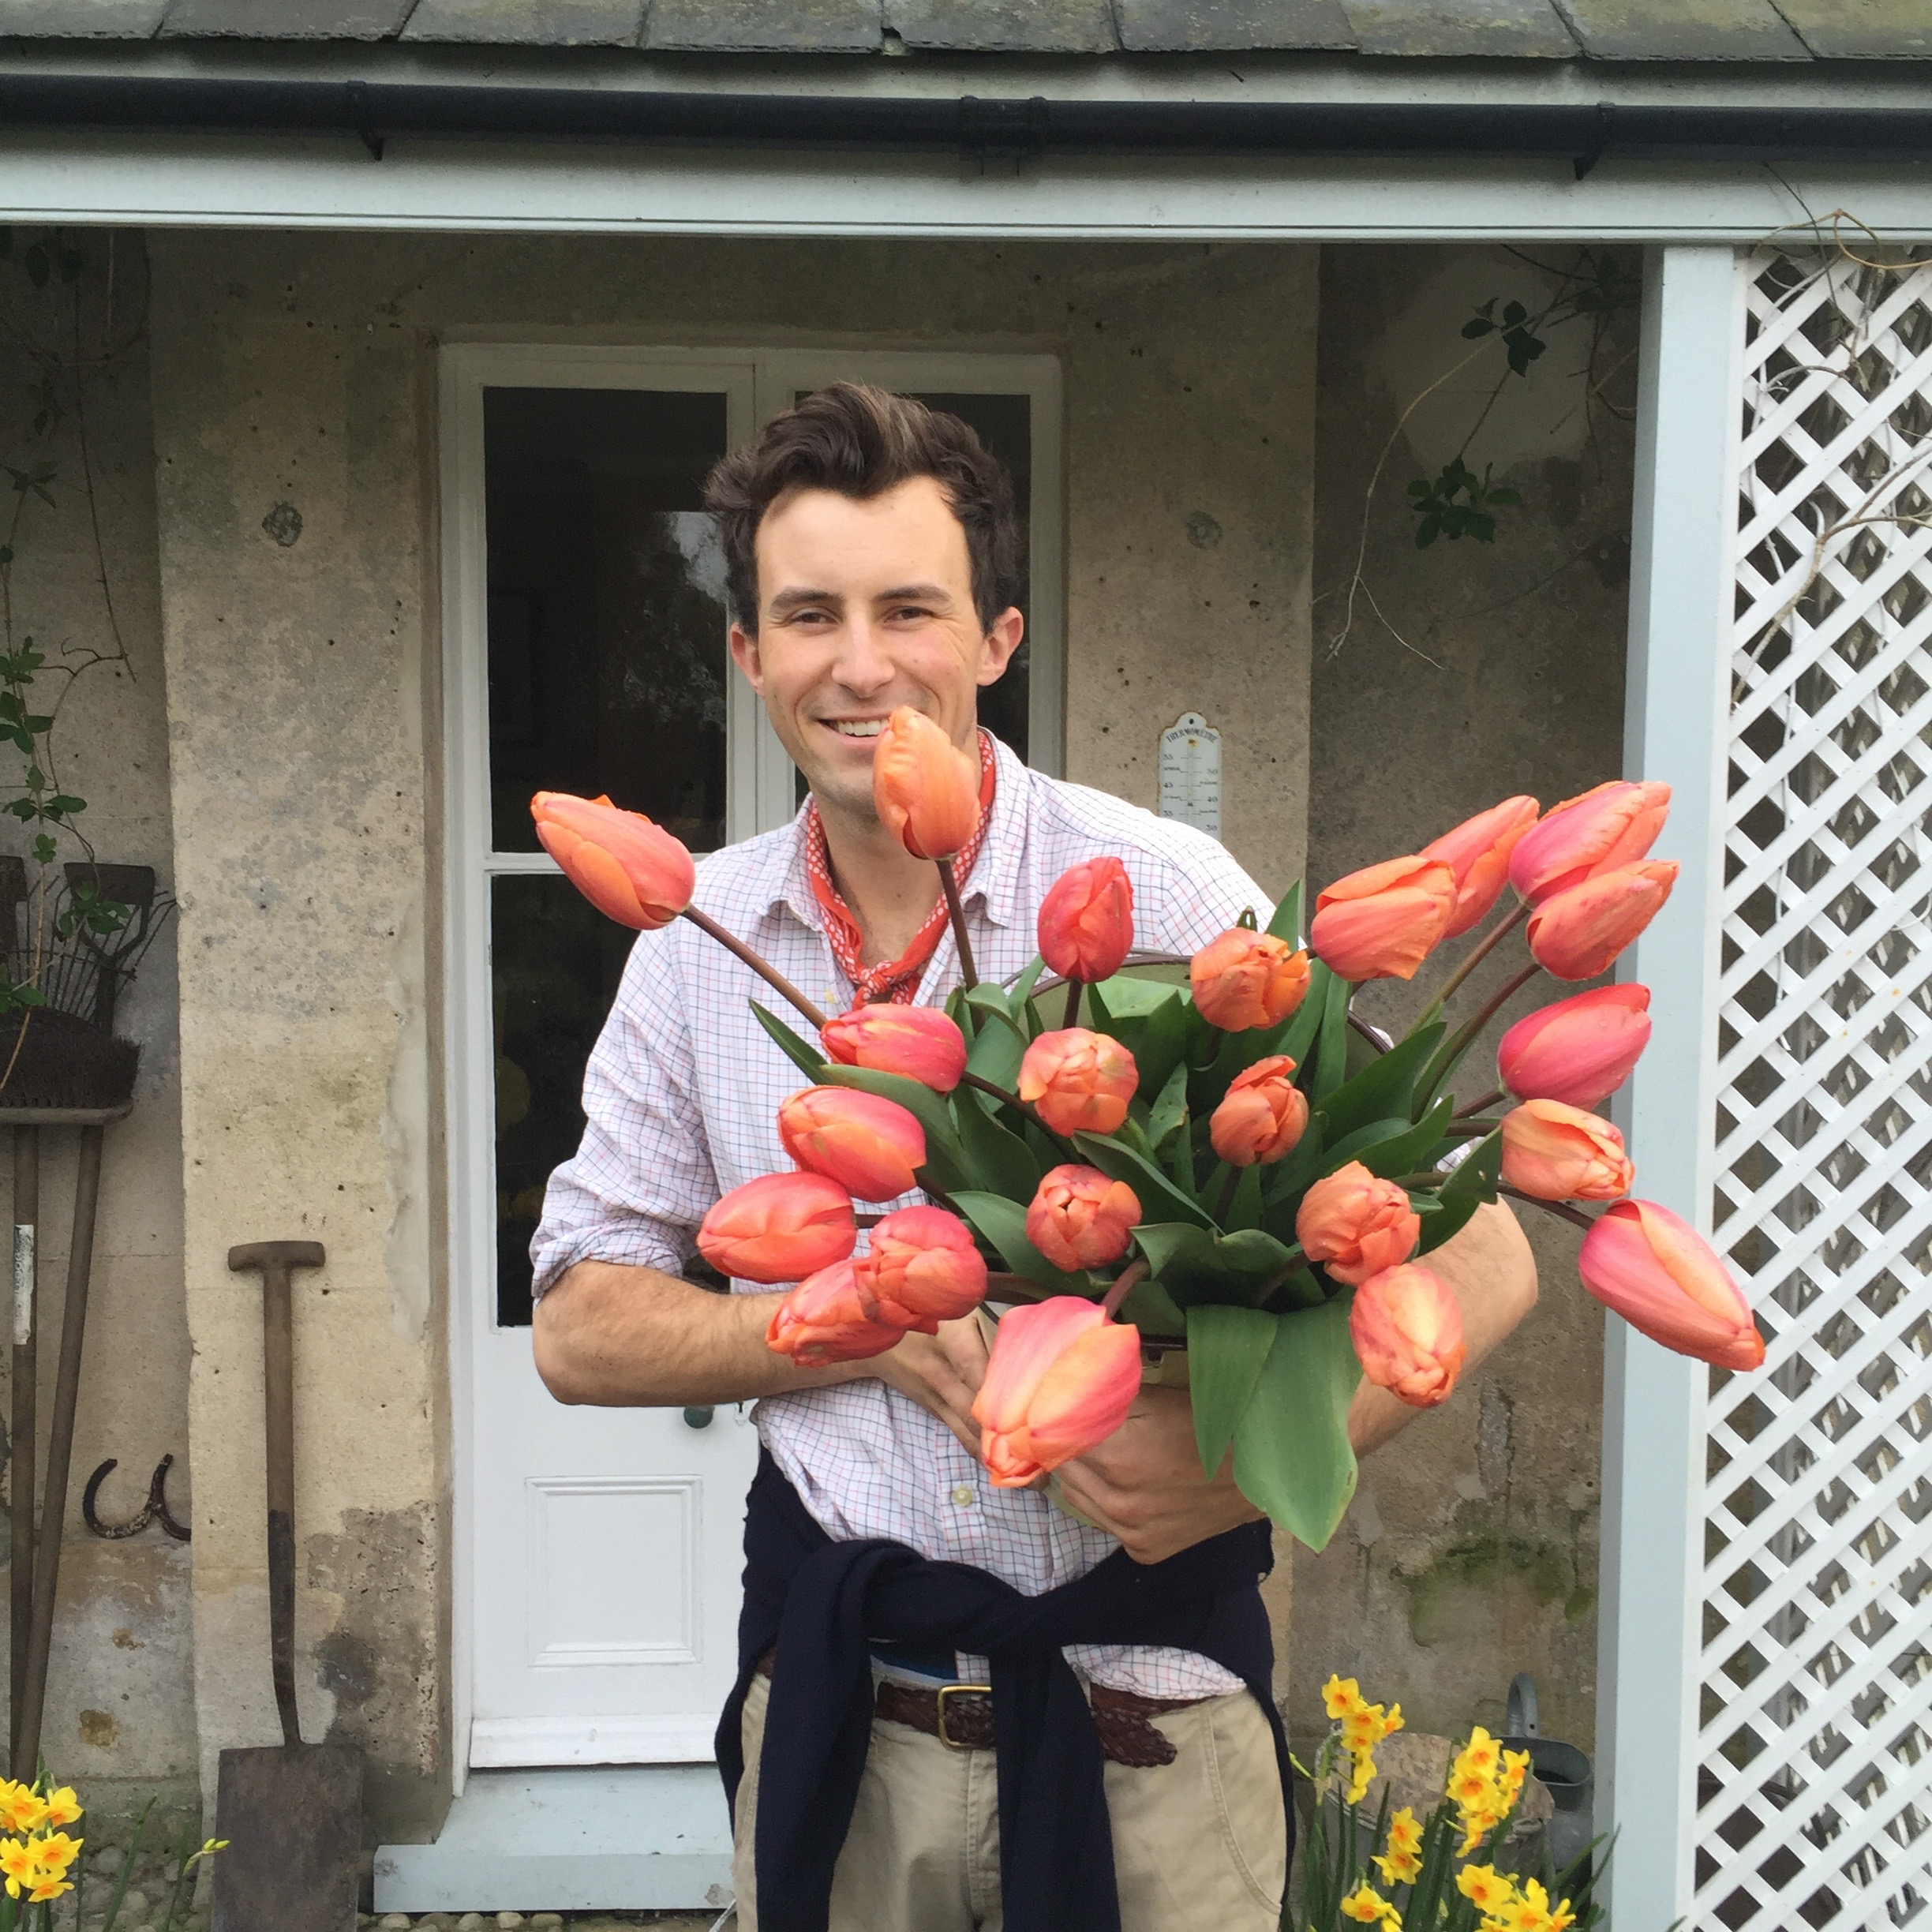 15 Fantastic Florists To Follow On Instagram: Meet Charlie McCormick, The Floral Designer You Need To